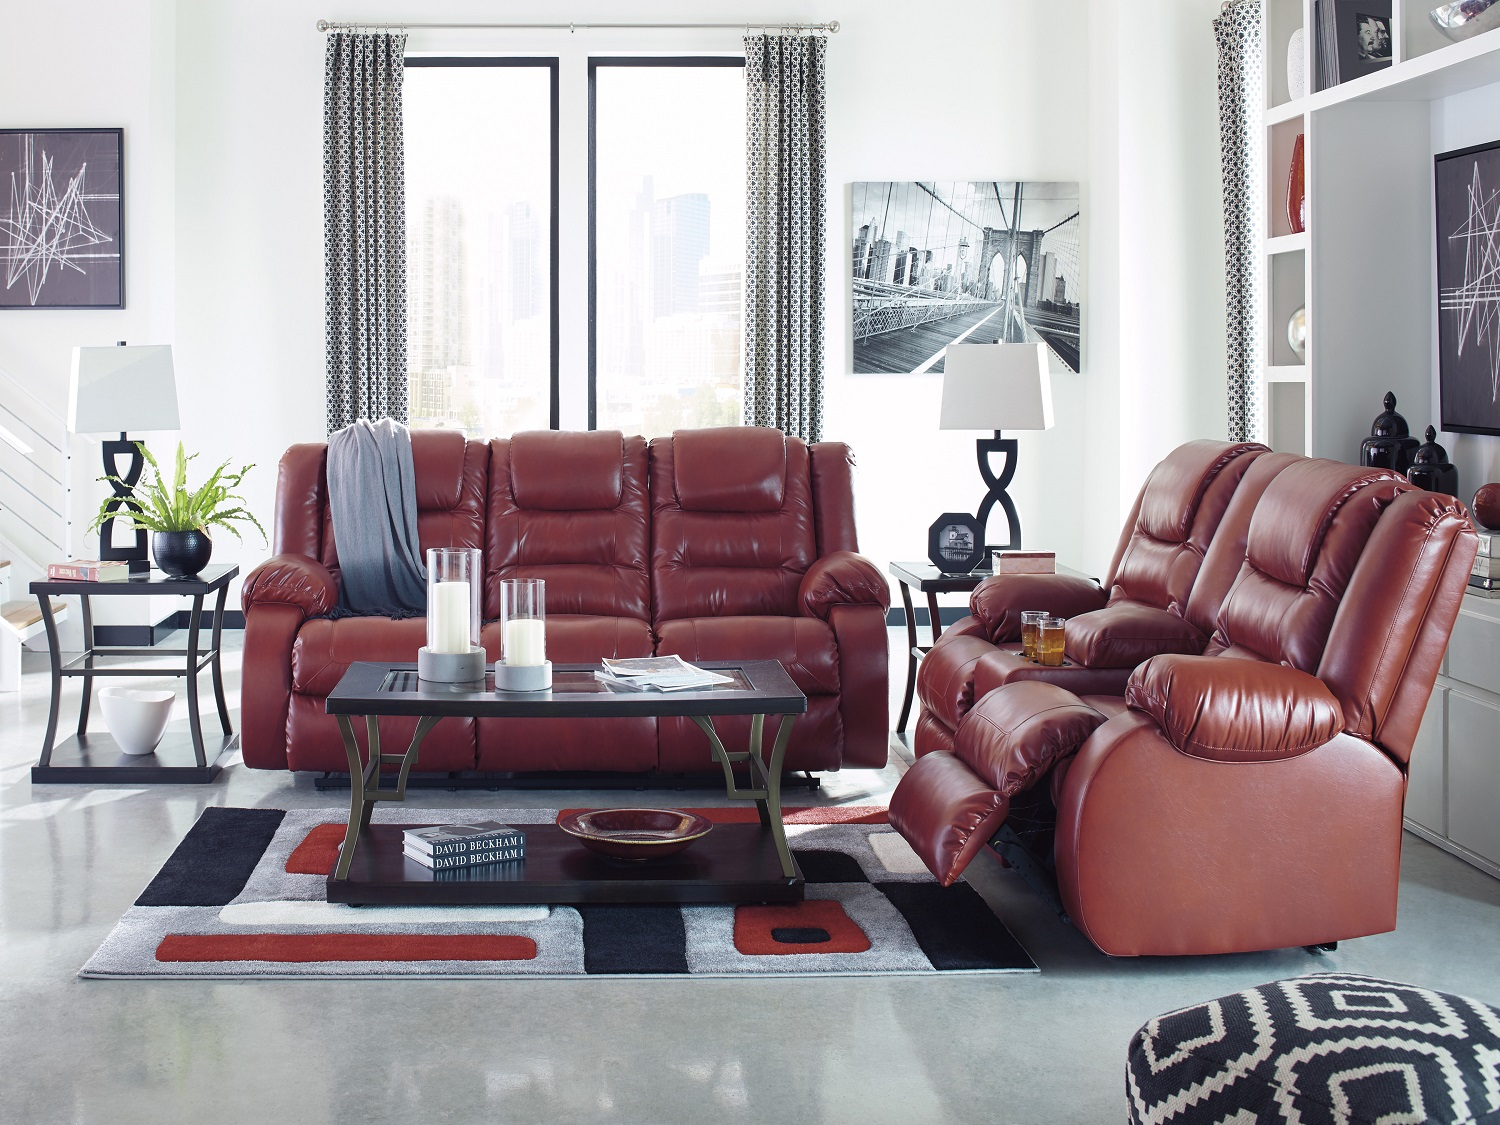 Vacherie, 793, Recliners by Midha Furniture to Brampton, Mississauga, Etobicoke, Toronto, Scraborough, Caledon, Oakville, Markham, Ajax, Pickering, Oshawa, Richmondhill, Kitchener, Hamilton and GTA area